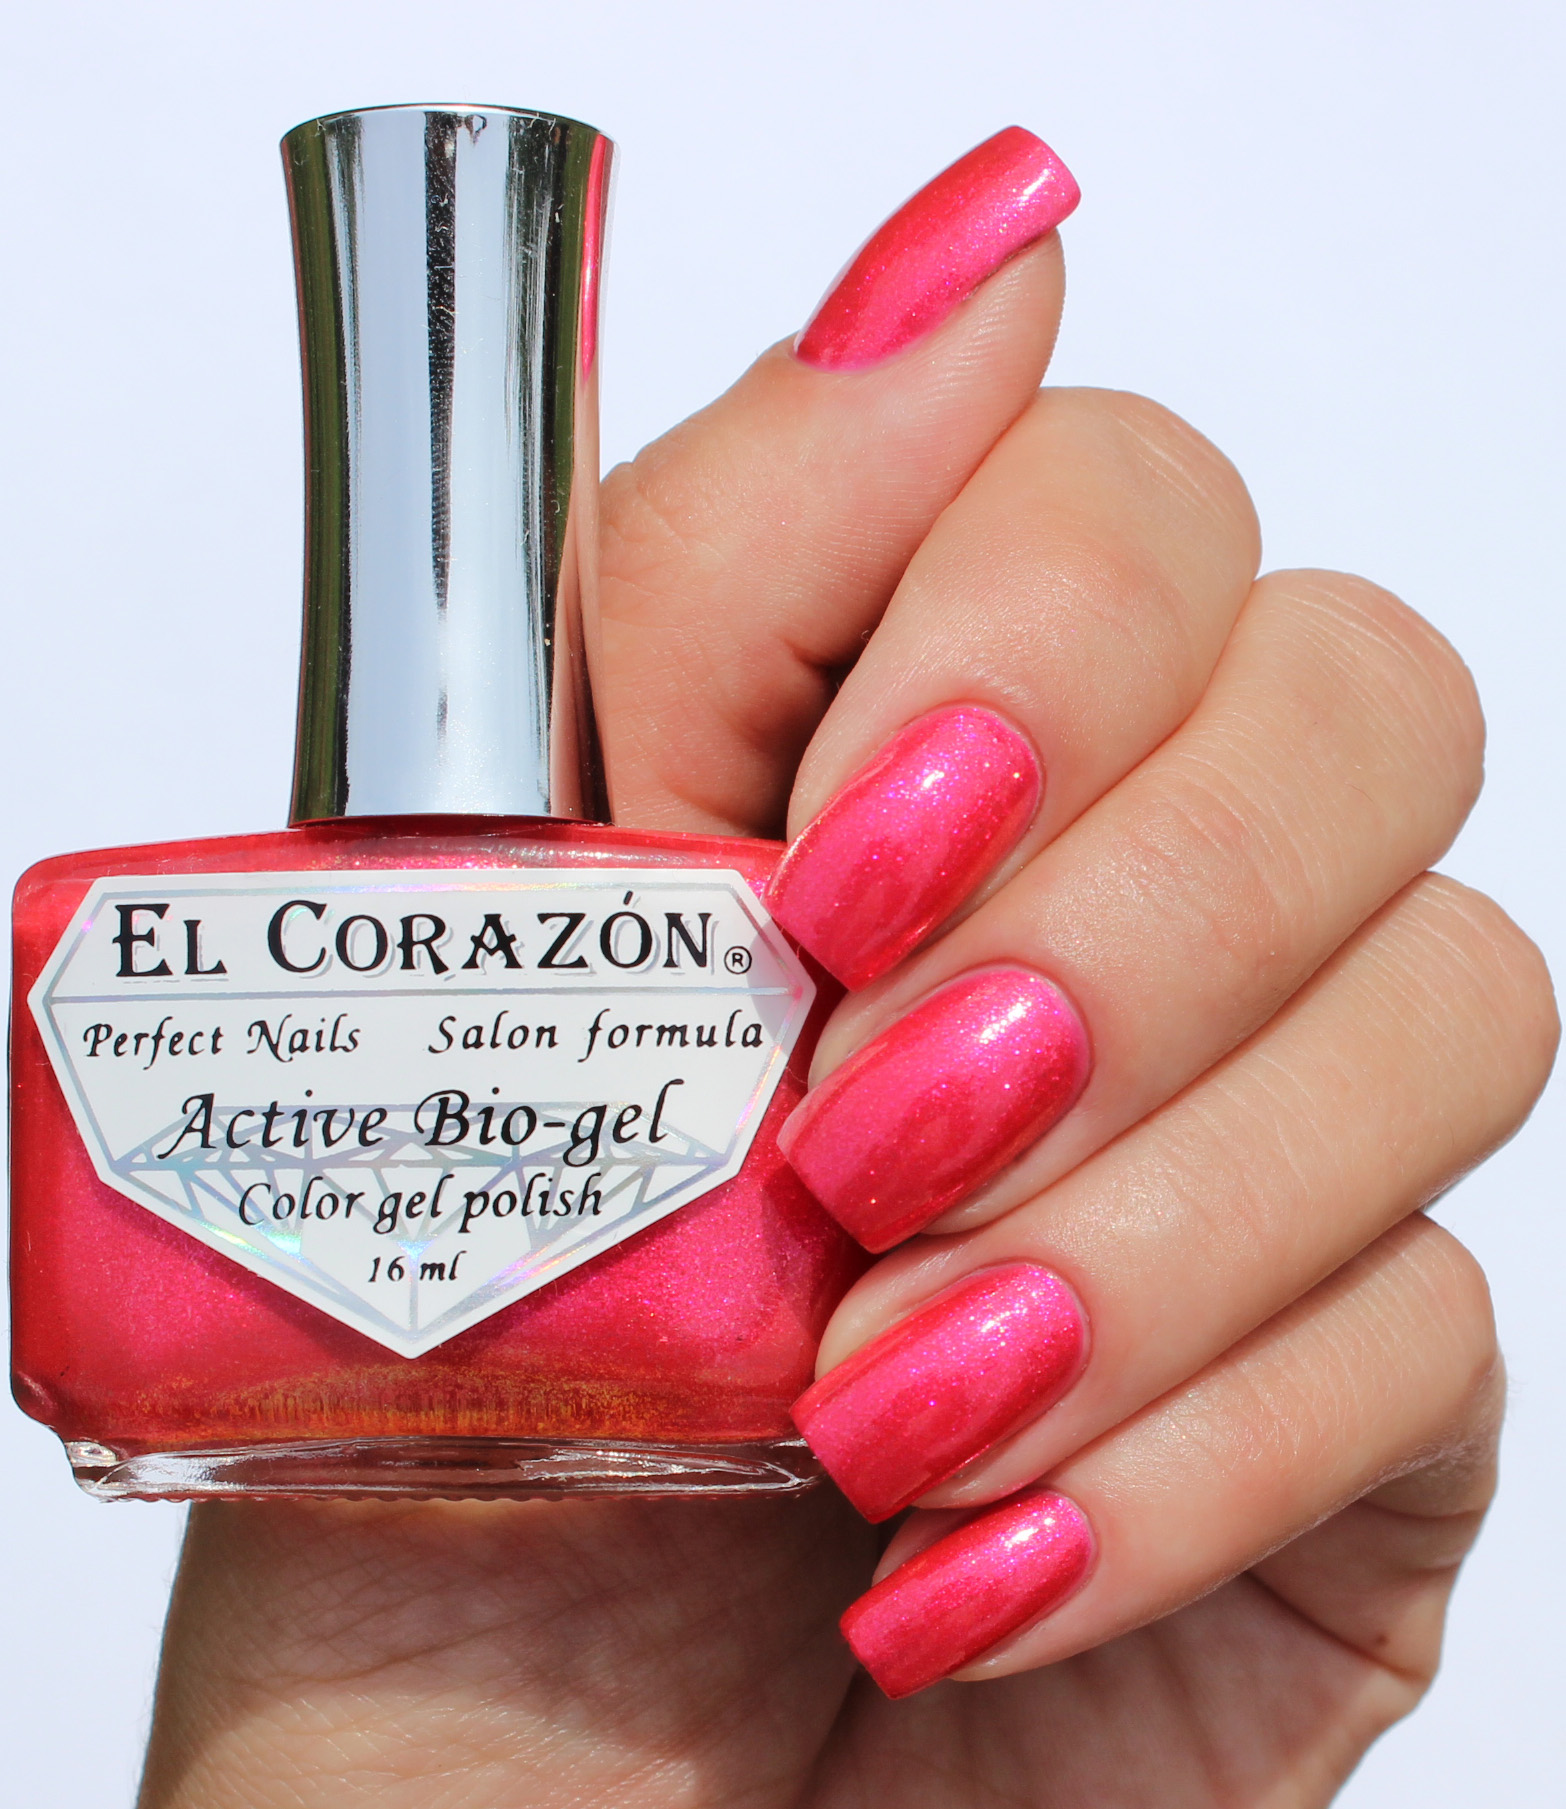 EL Corazon Active Bio-gel Color gel polish Magic №423/581 Magic of the Arabian Nights